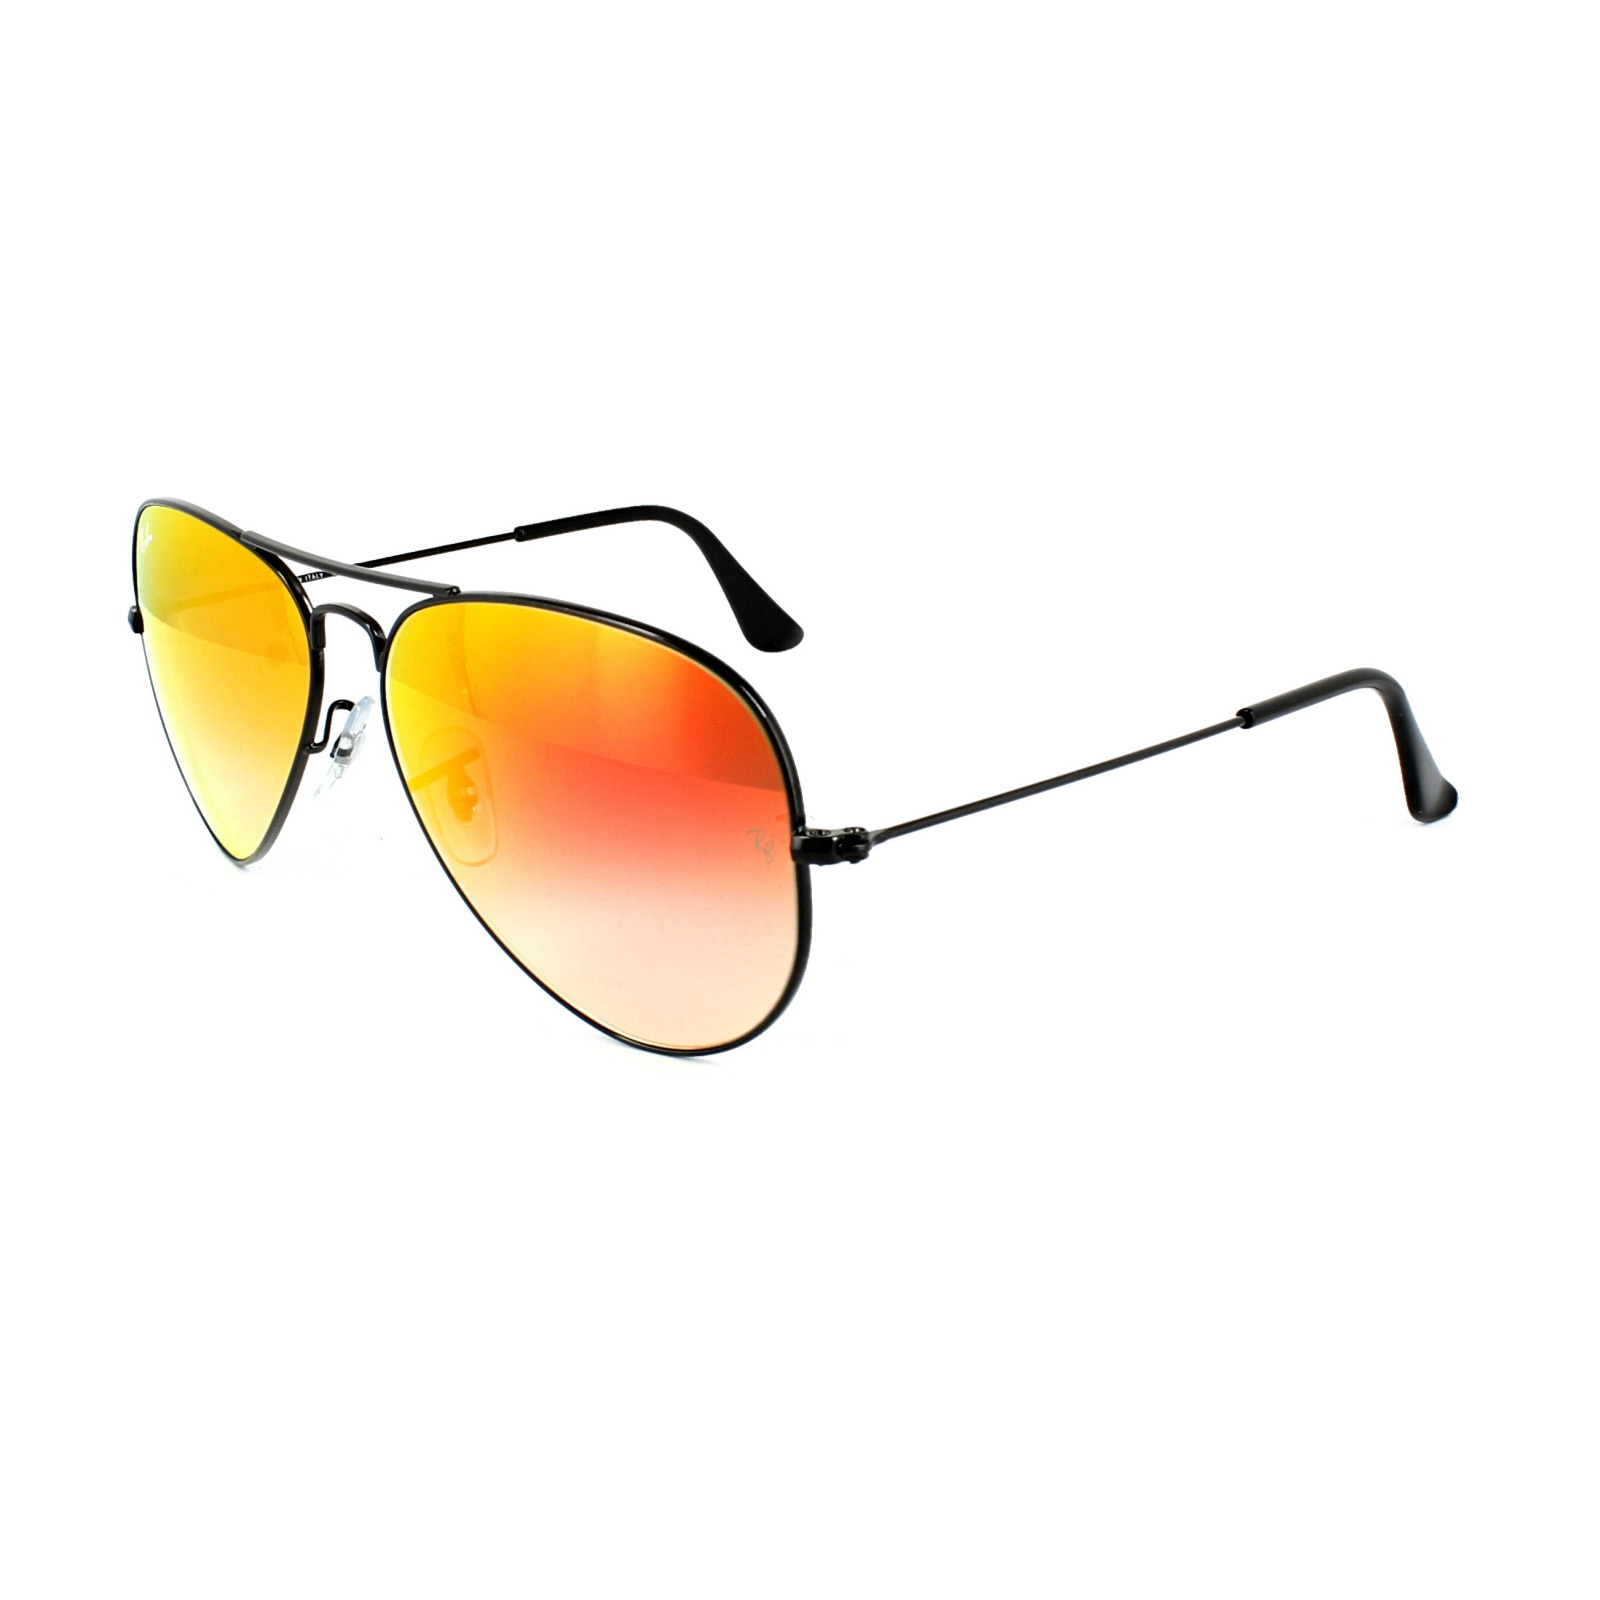 cea992682d4 Details about Ray-Ban Sunglasses Aviator 3025 002 4W Black Orange Gradient  Flash Mirror M